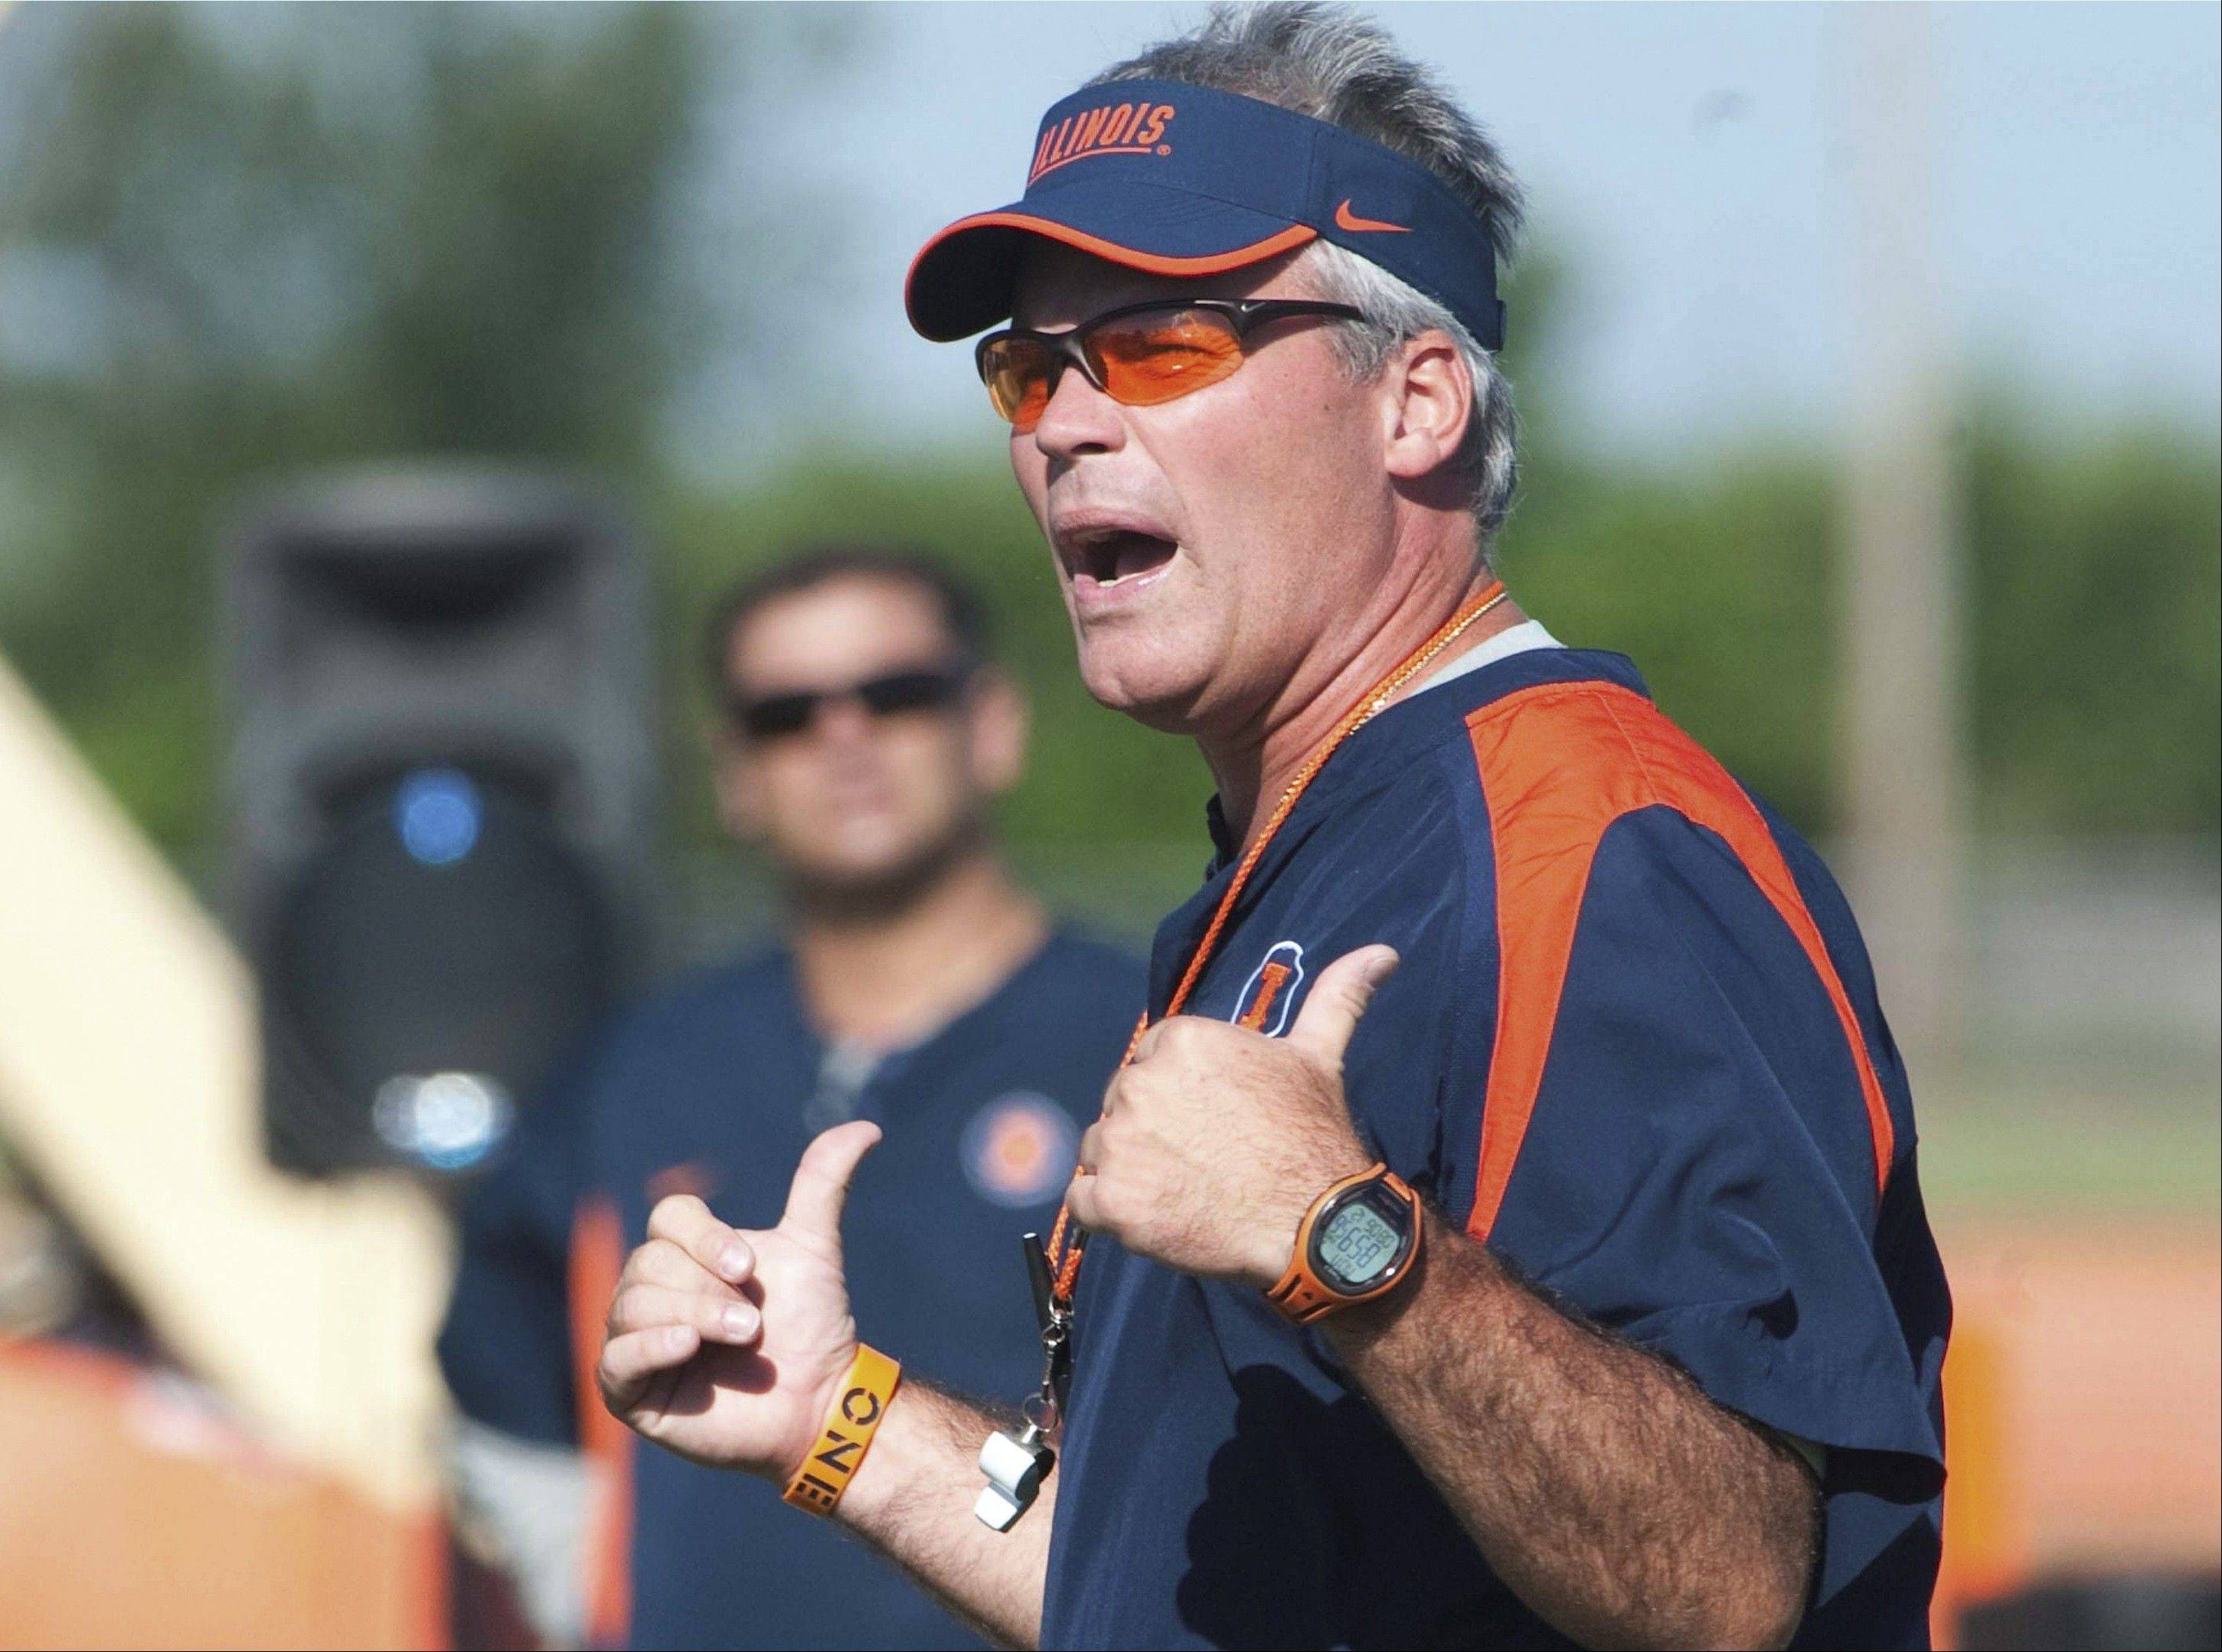 Illinois head football coach Tim Beckman's team opens the season against Western Michigan at 11 a.m. Saturday in Champaign.